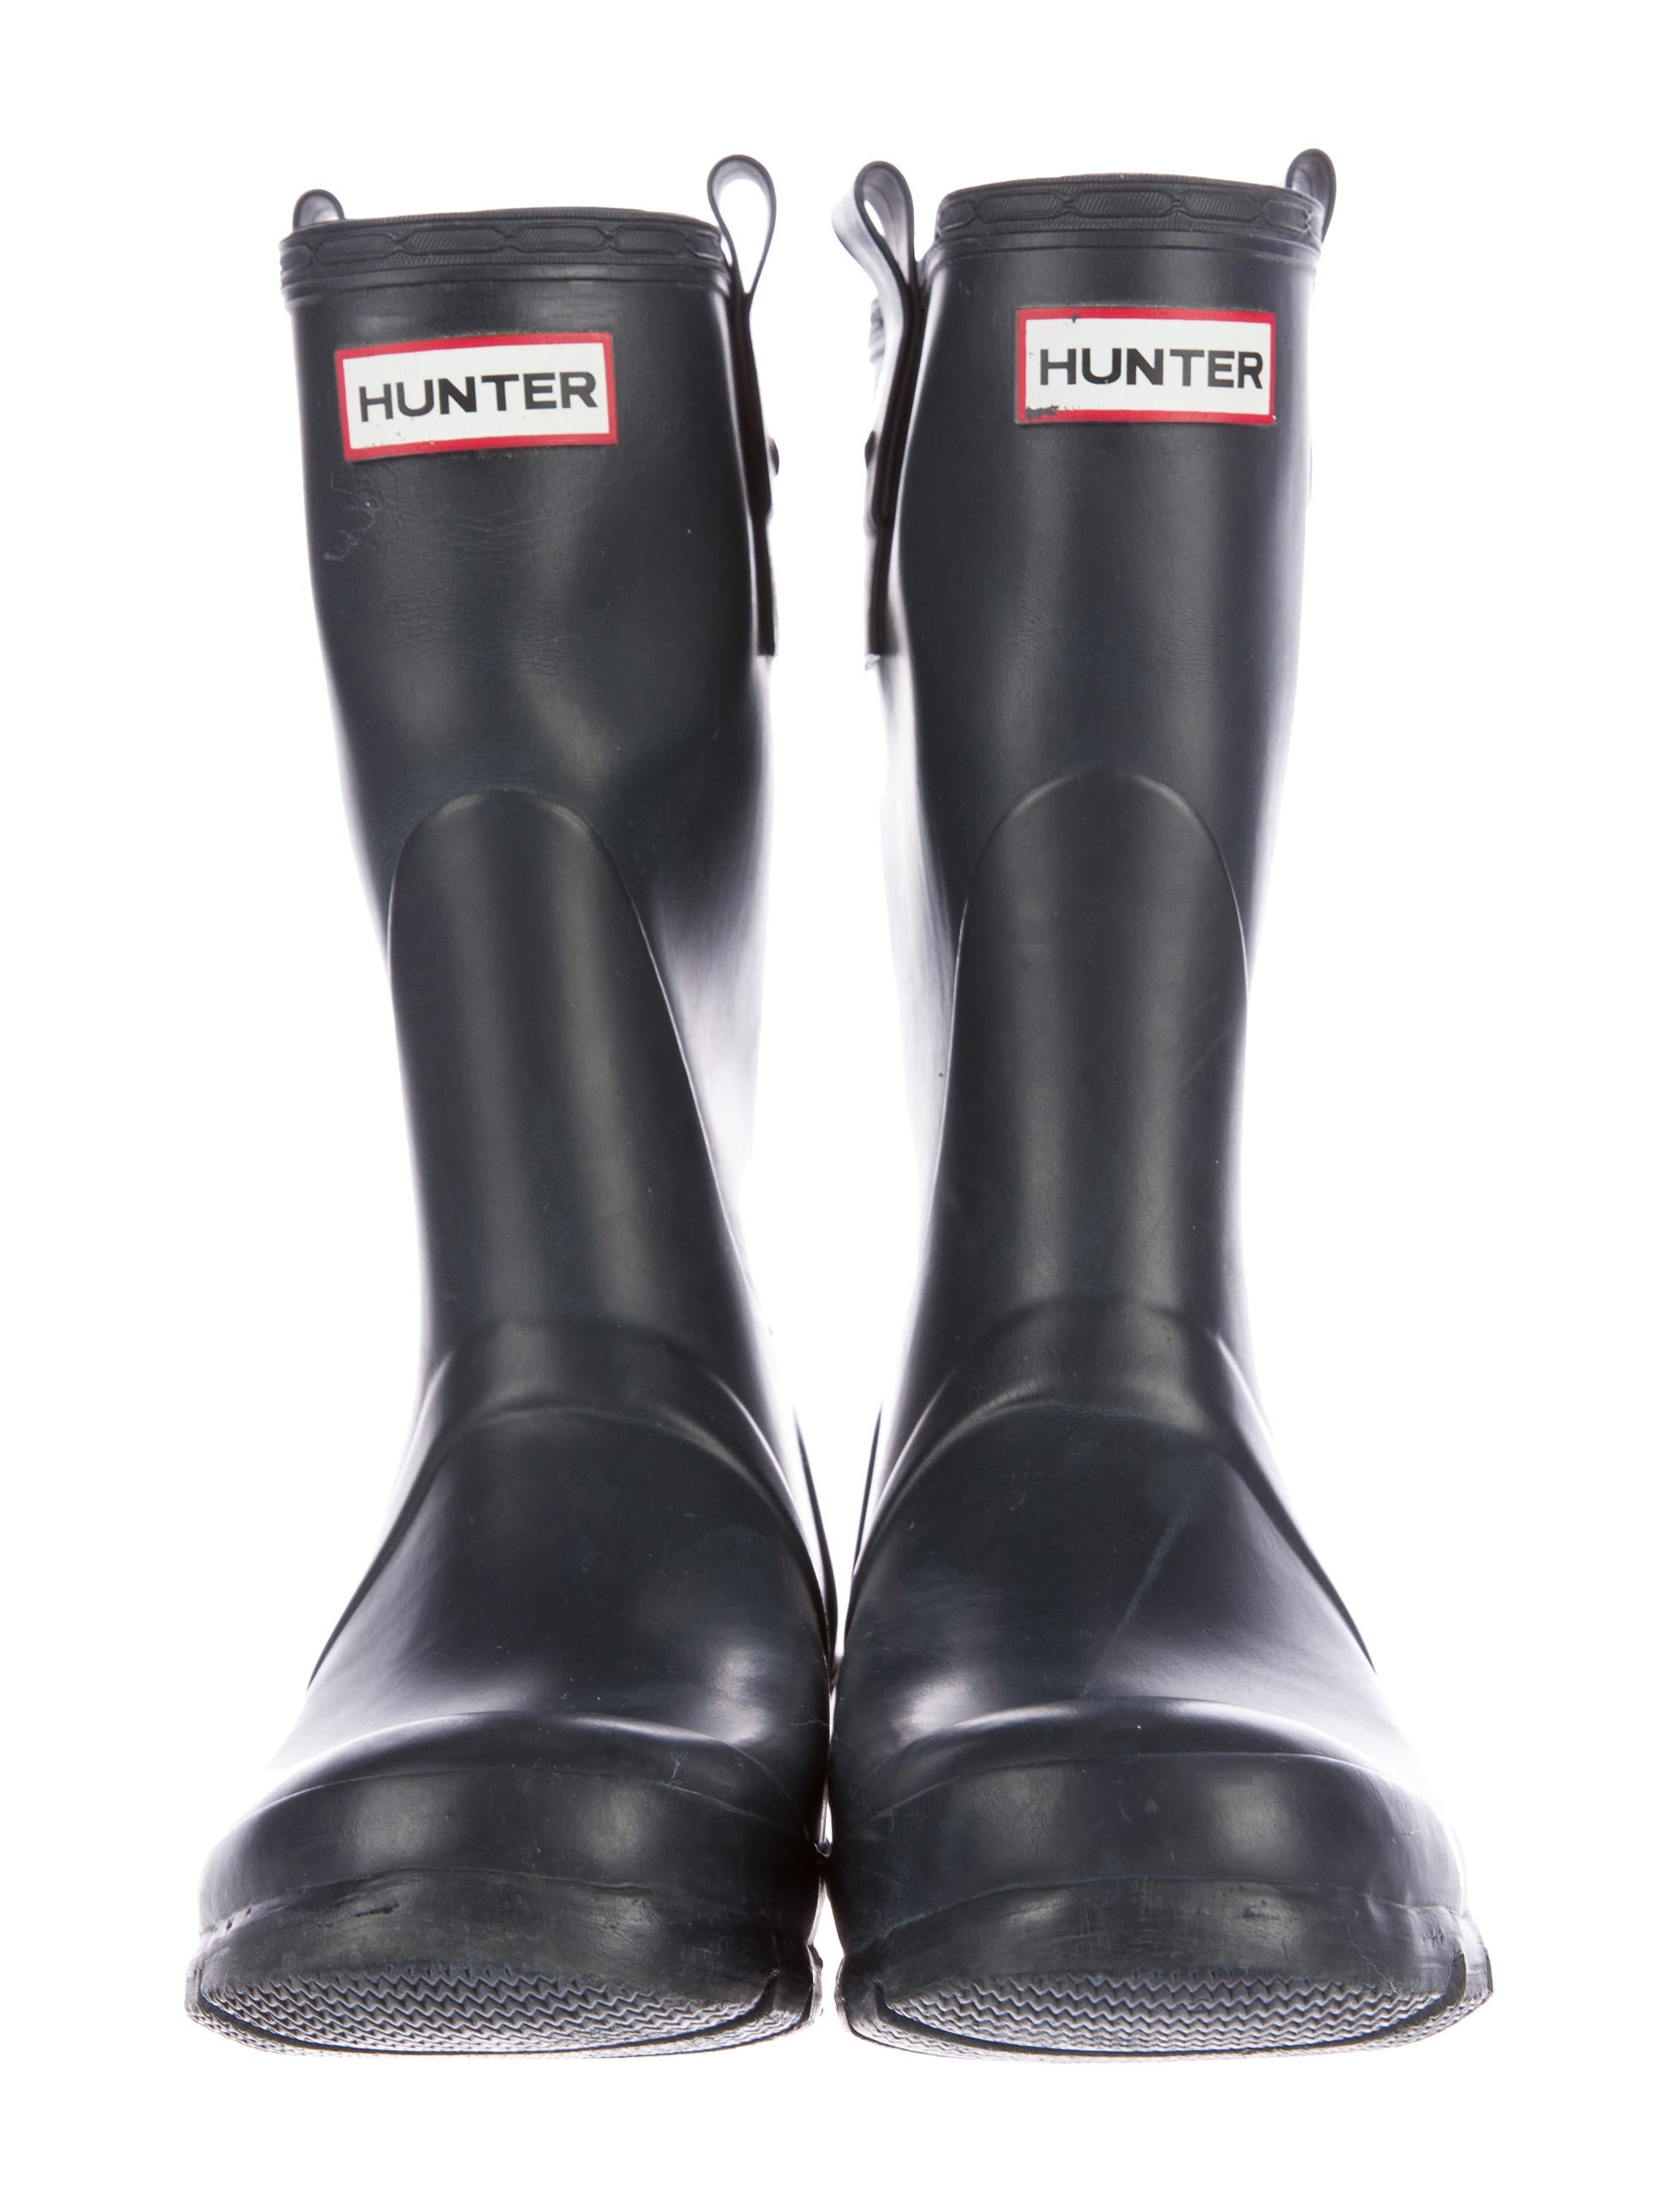 Hunter Rubber Rain Boots - Shoes - WH821111 | The RealReal